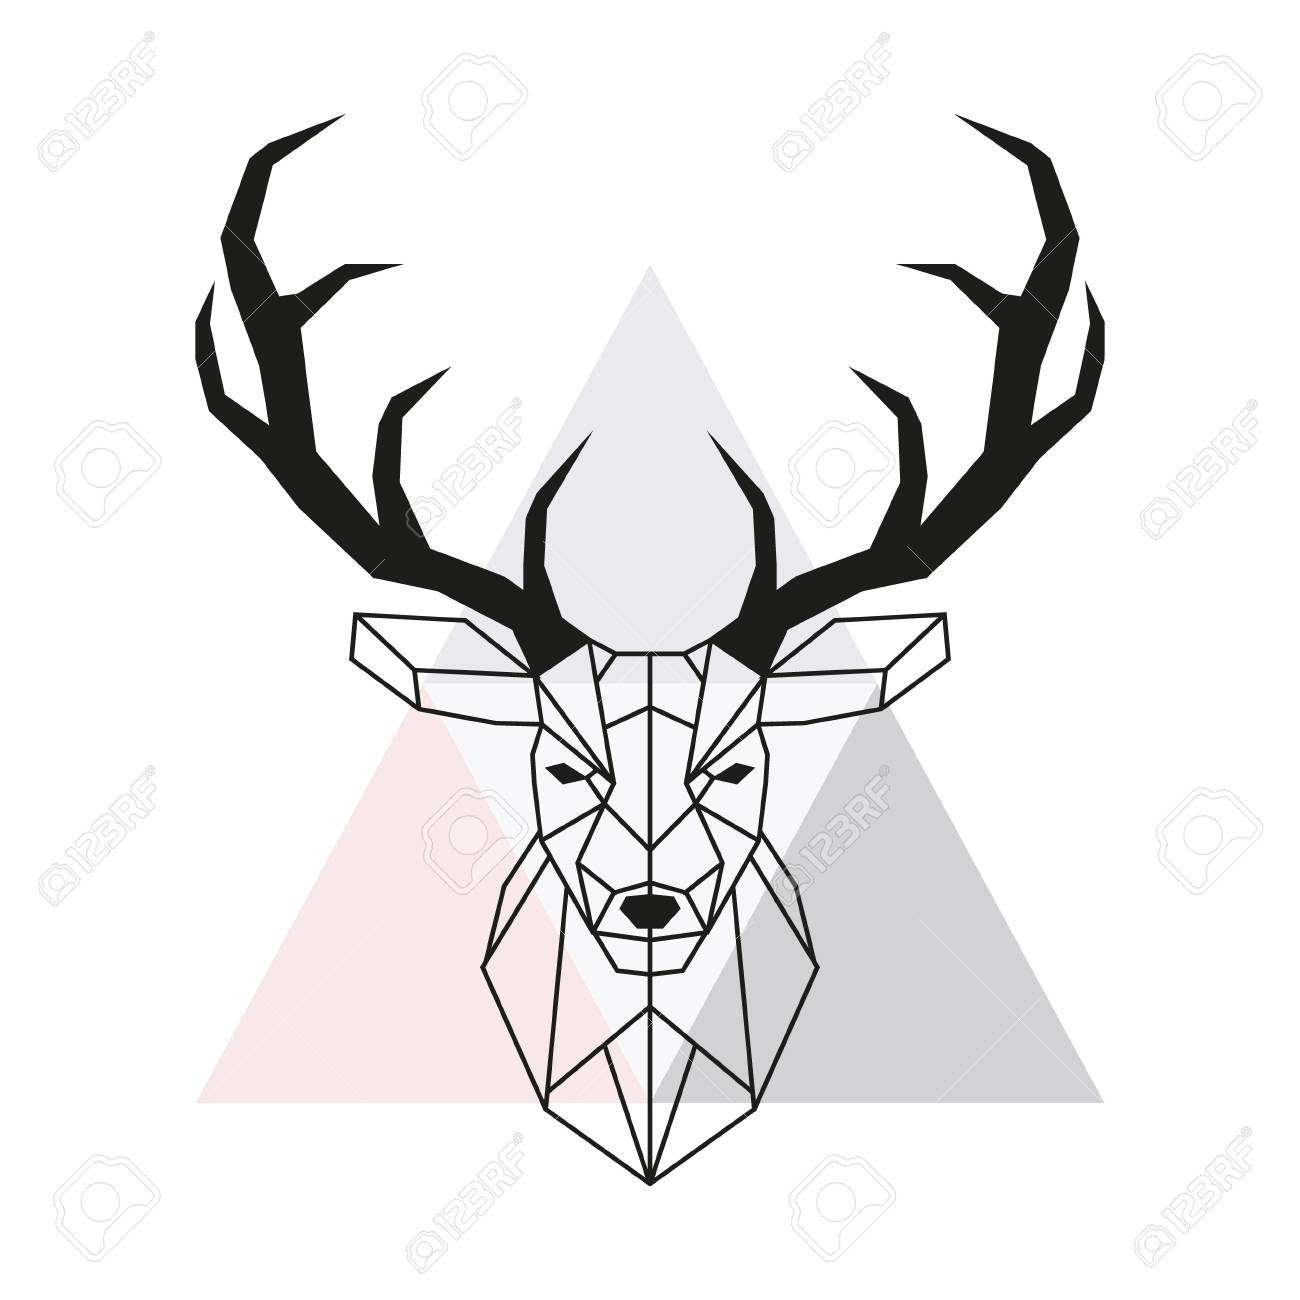 Vector vector geometric deer head stag head and antlers low poly style animal drawing vector illustration